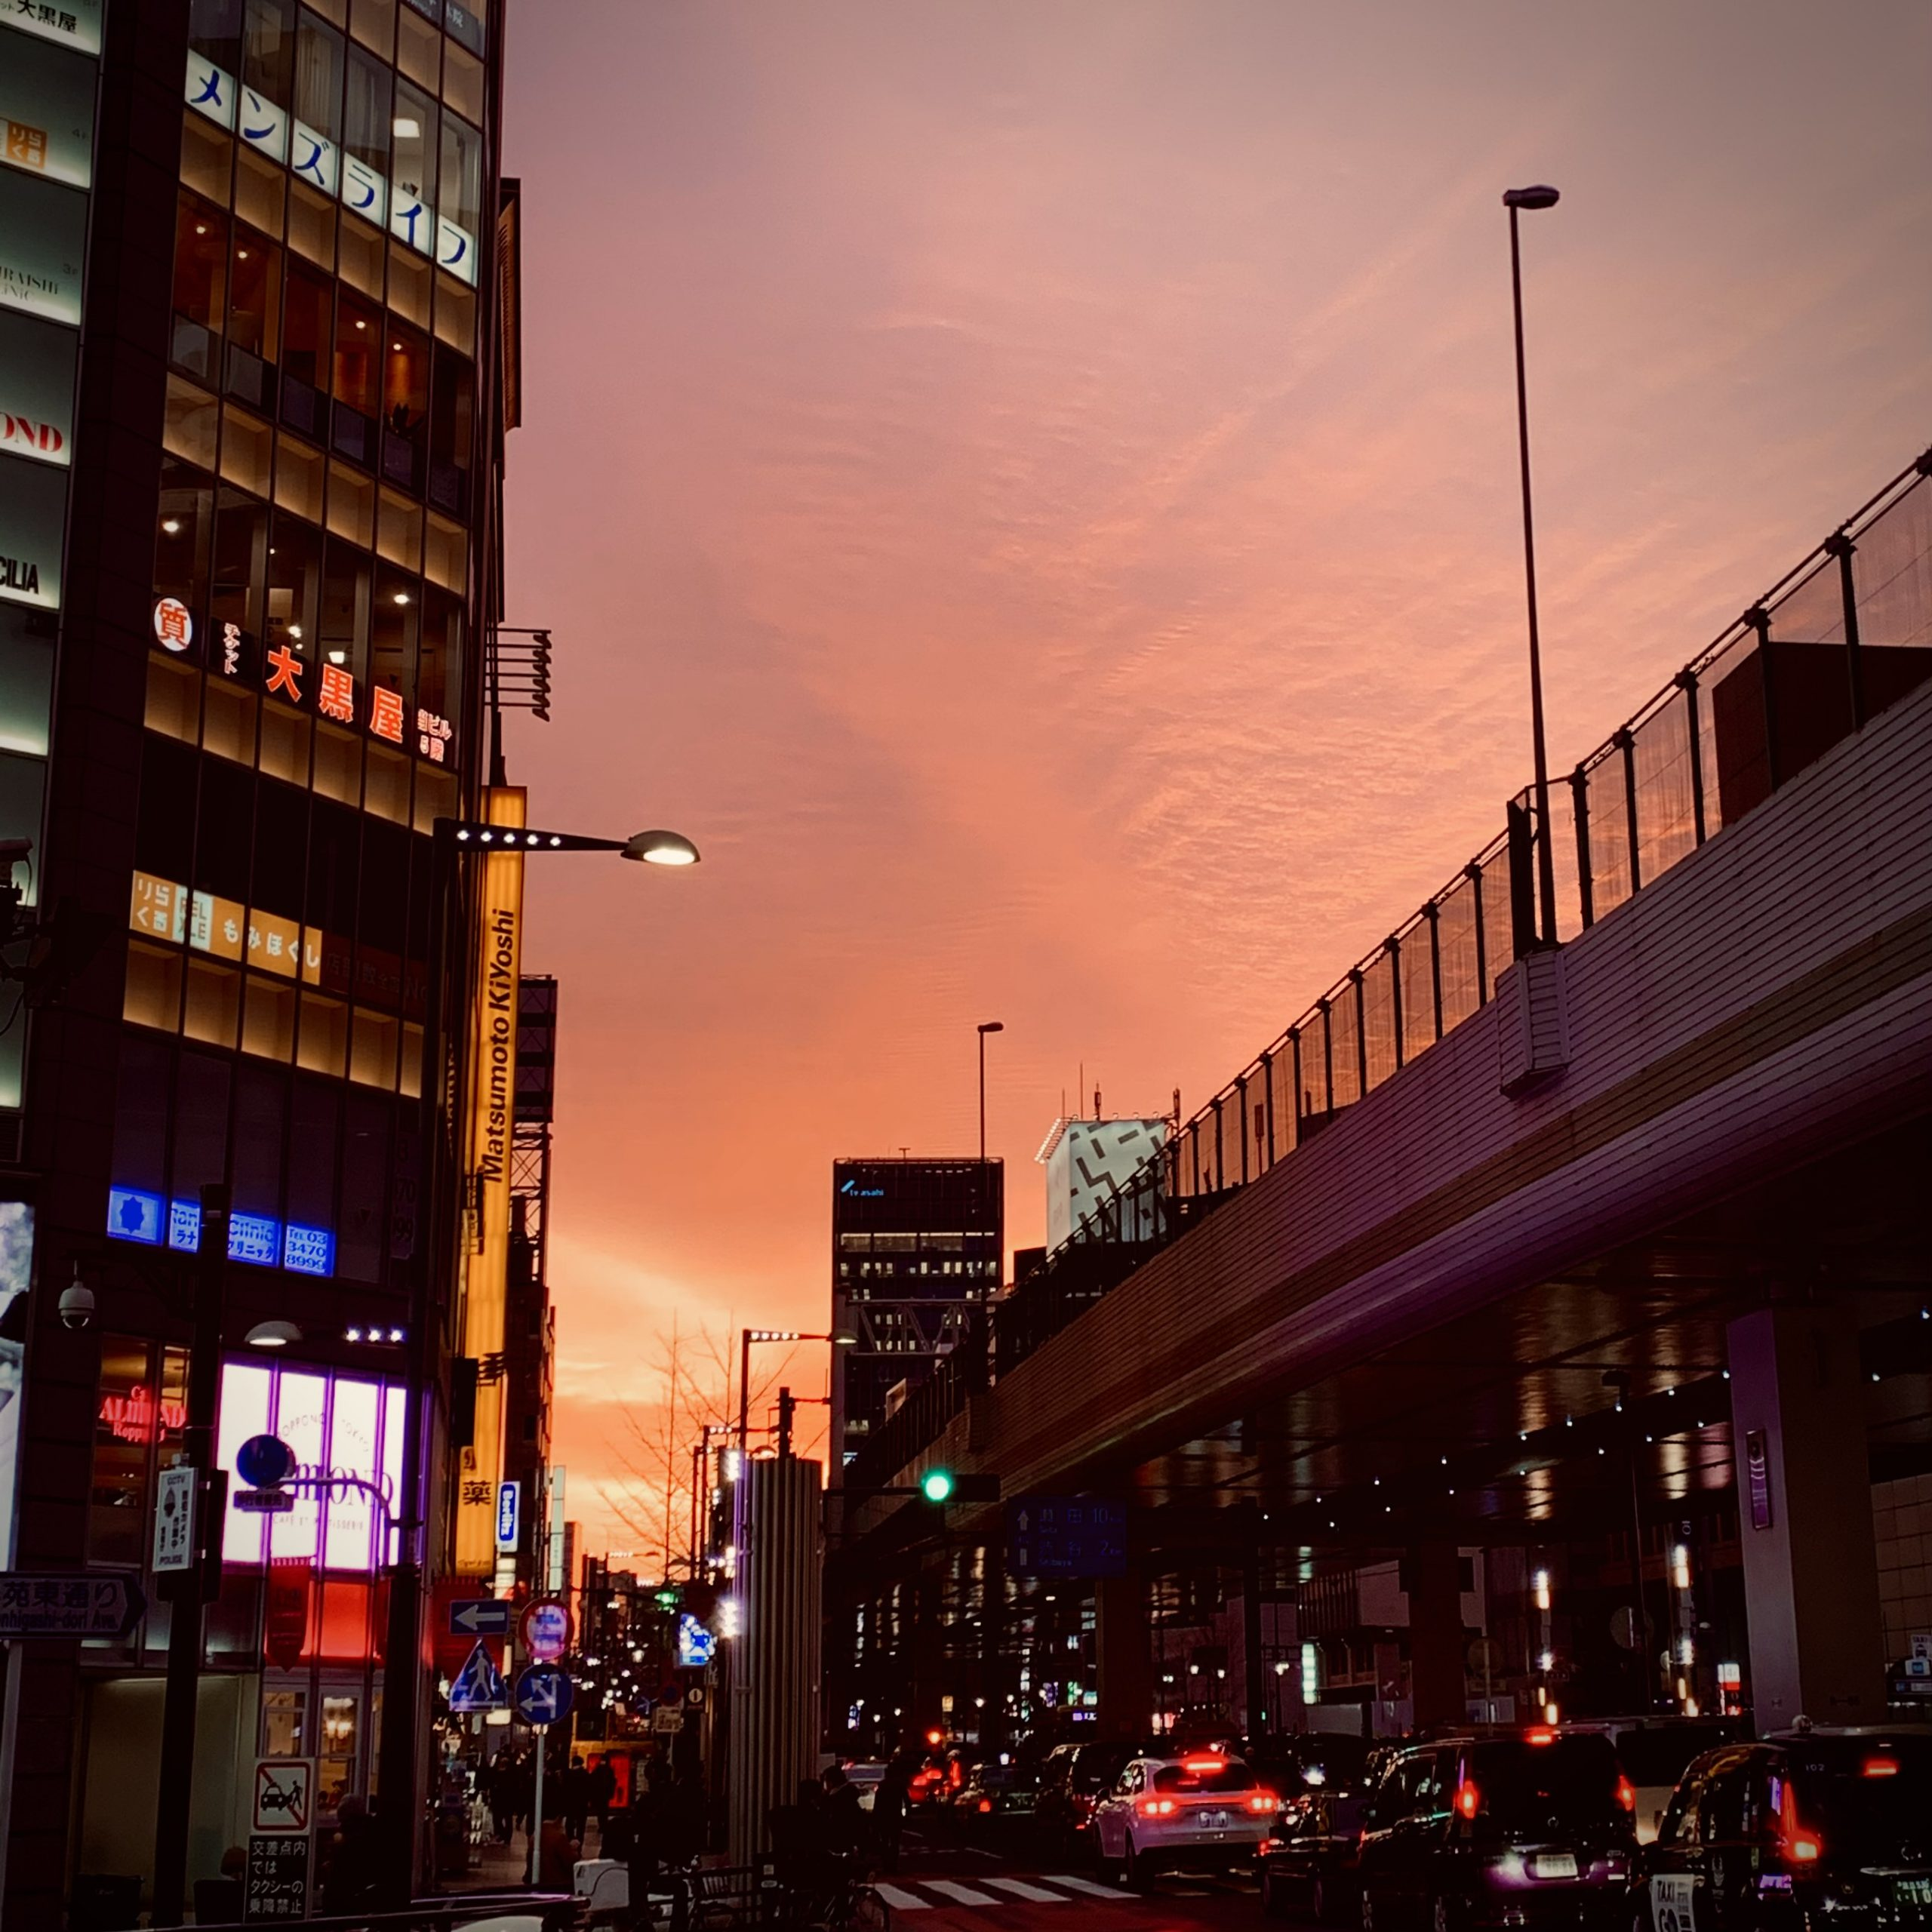 Tokyo ON #070: A New Hope - Roppongi Crossing at sunset